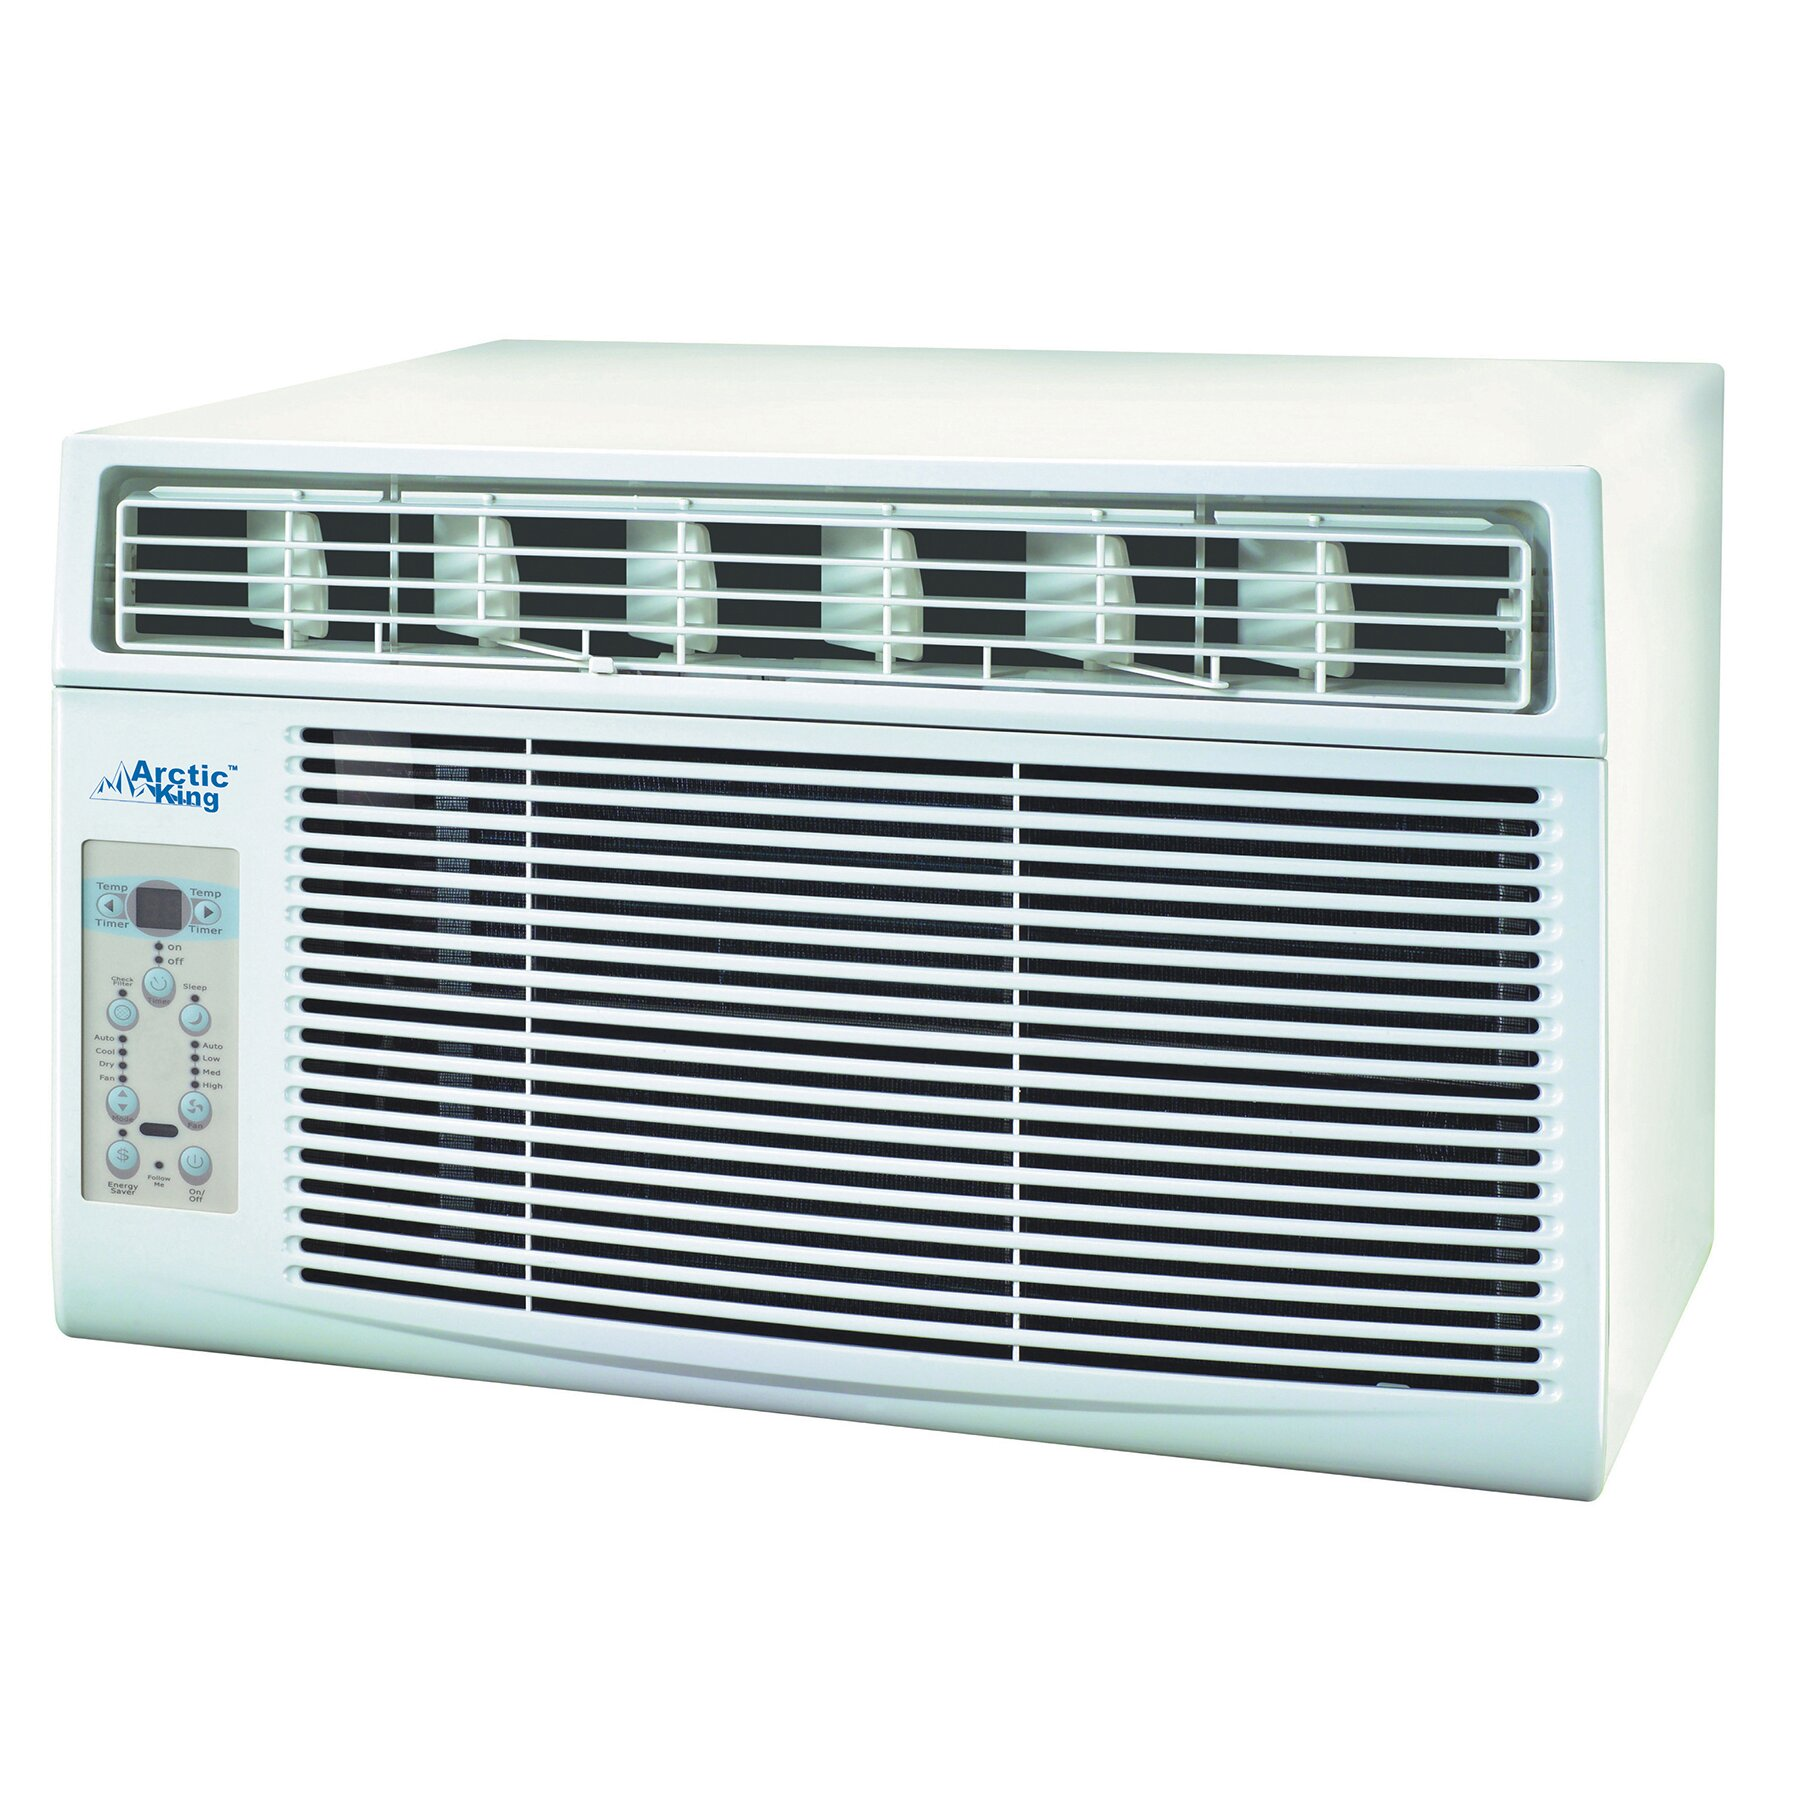 Arctic king 12 000 btu window air conditioner with remote for 12 000 btu window air conditioner